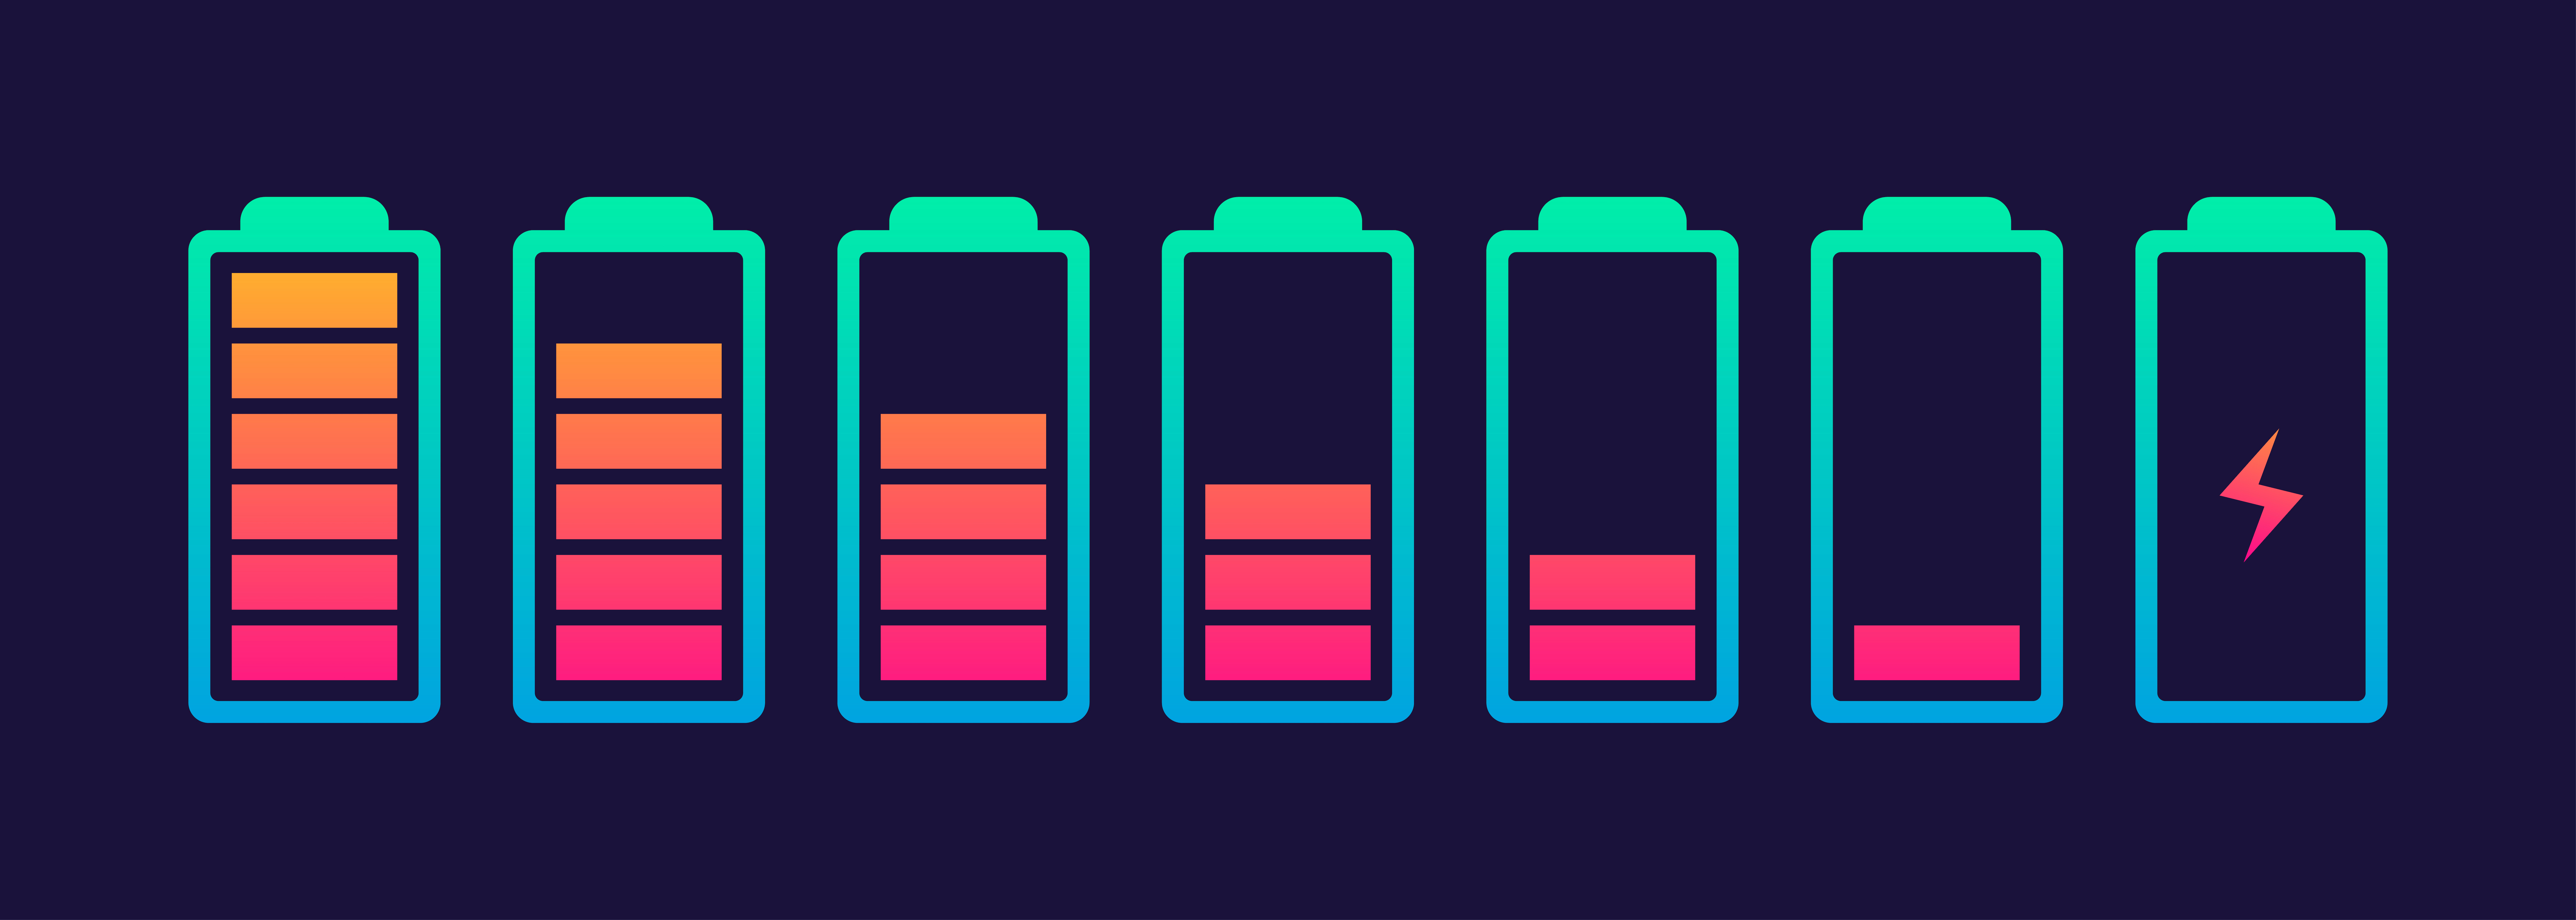 Solar Power Can You Charge A Lithium Battery With A Lead Acid Charger